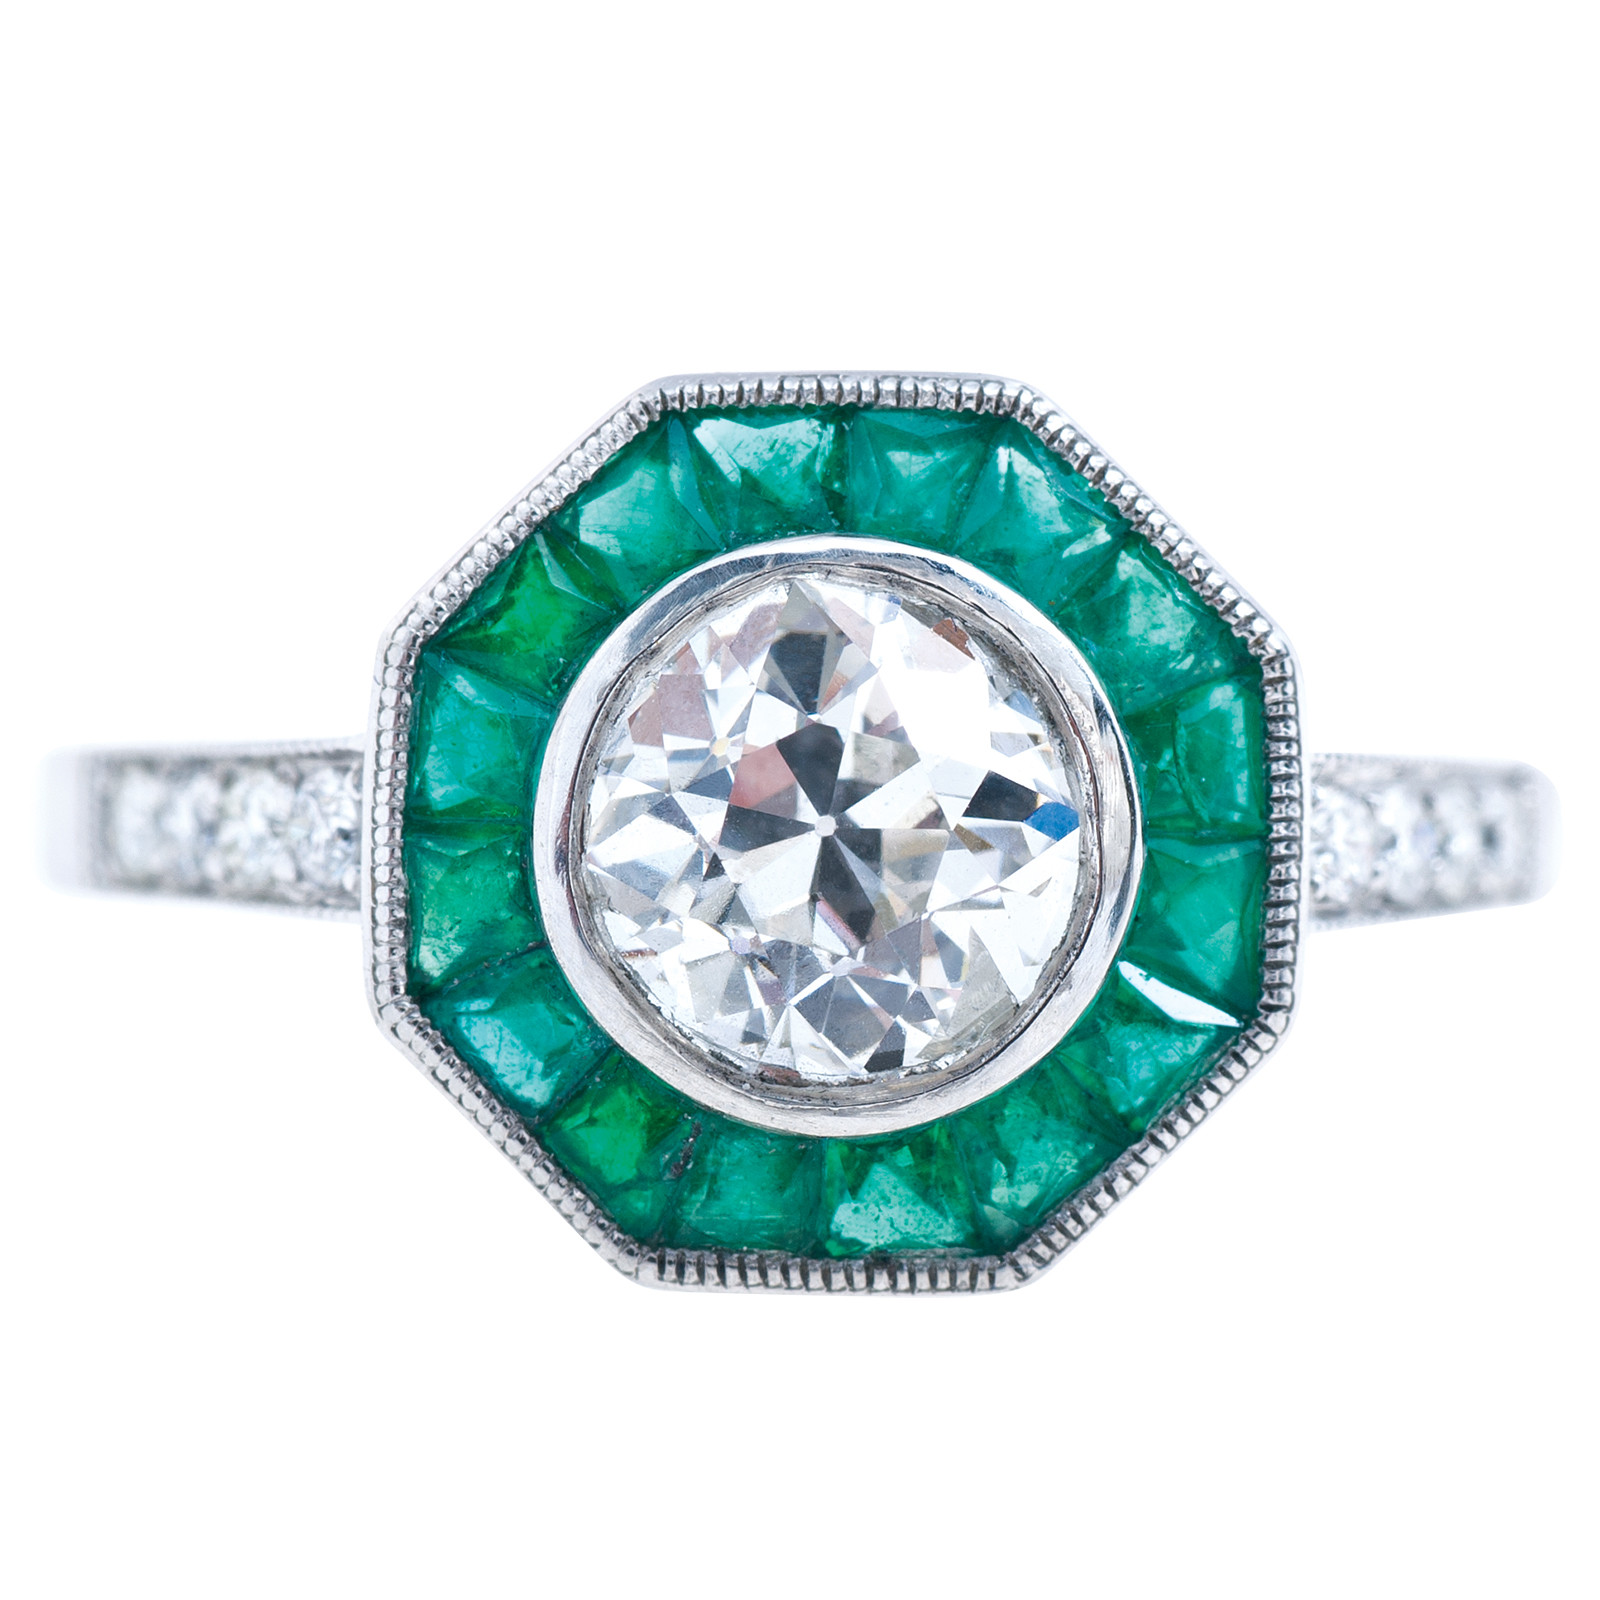 New Art Deco Inspired 1.80 CTW Diamond & Emerald Engagement Ring